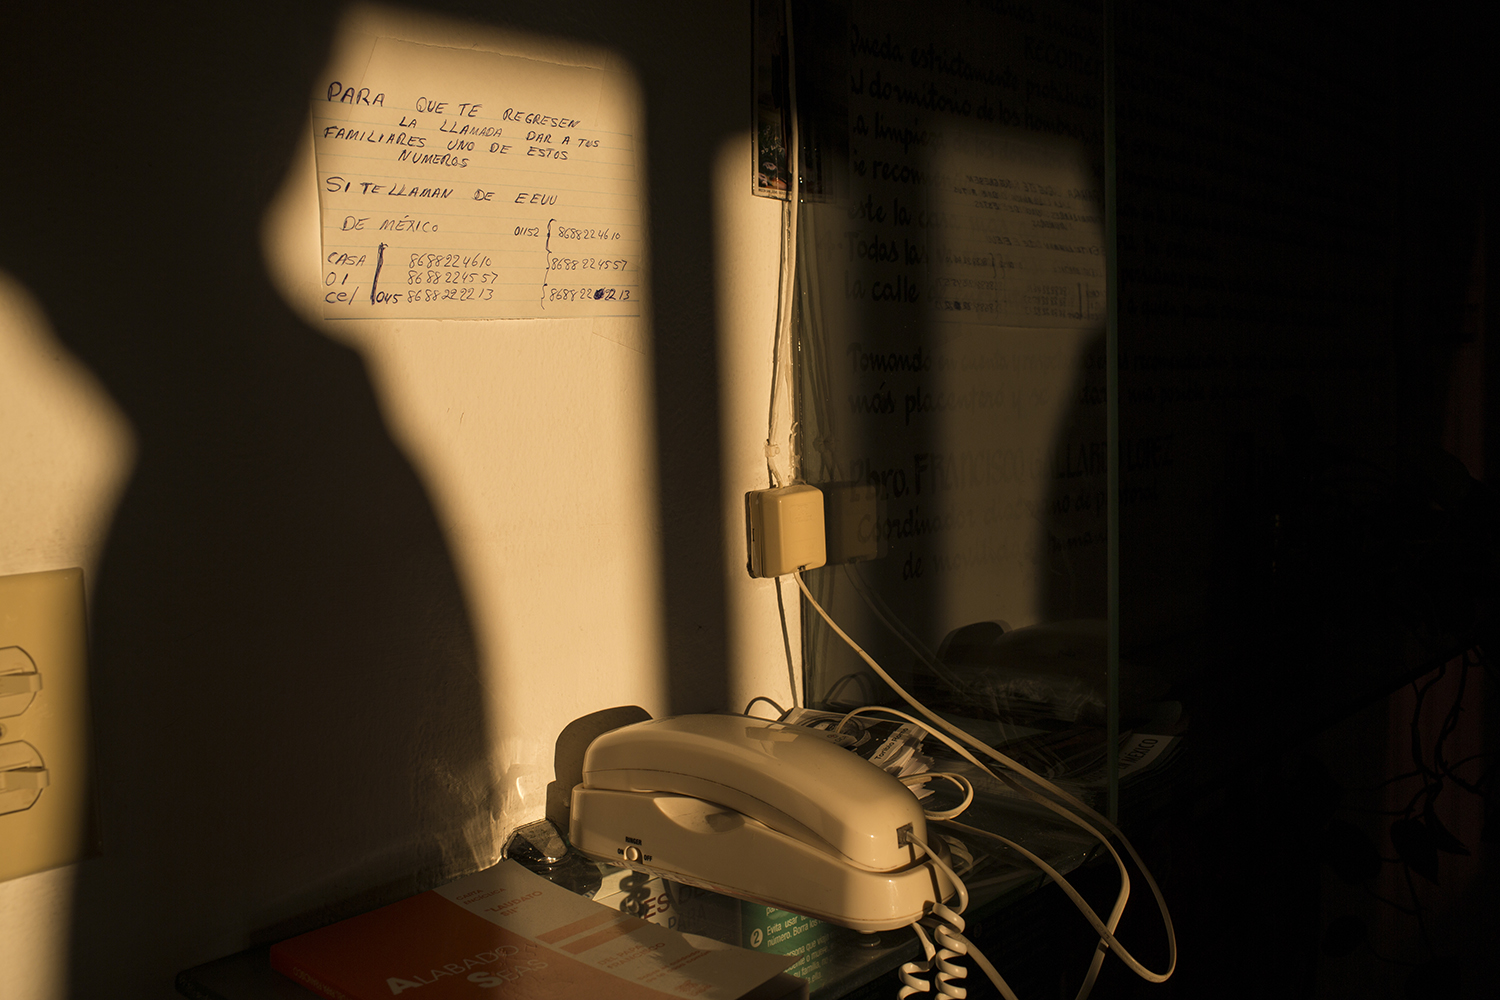 """A phone used by migrants to call their families sits in the """"Casa del Migrante"""" migrant shelter in Matamoros, Tamaulipas state, Mexico, Wednesday, March 22, 2017, across the border from Brownsville, Texas. (AP Photo/Rodrigo Abd)"""